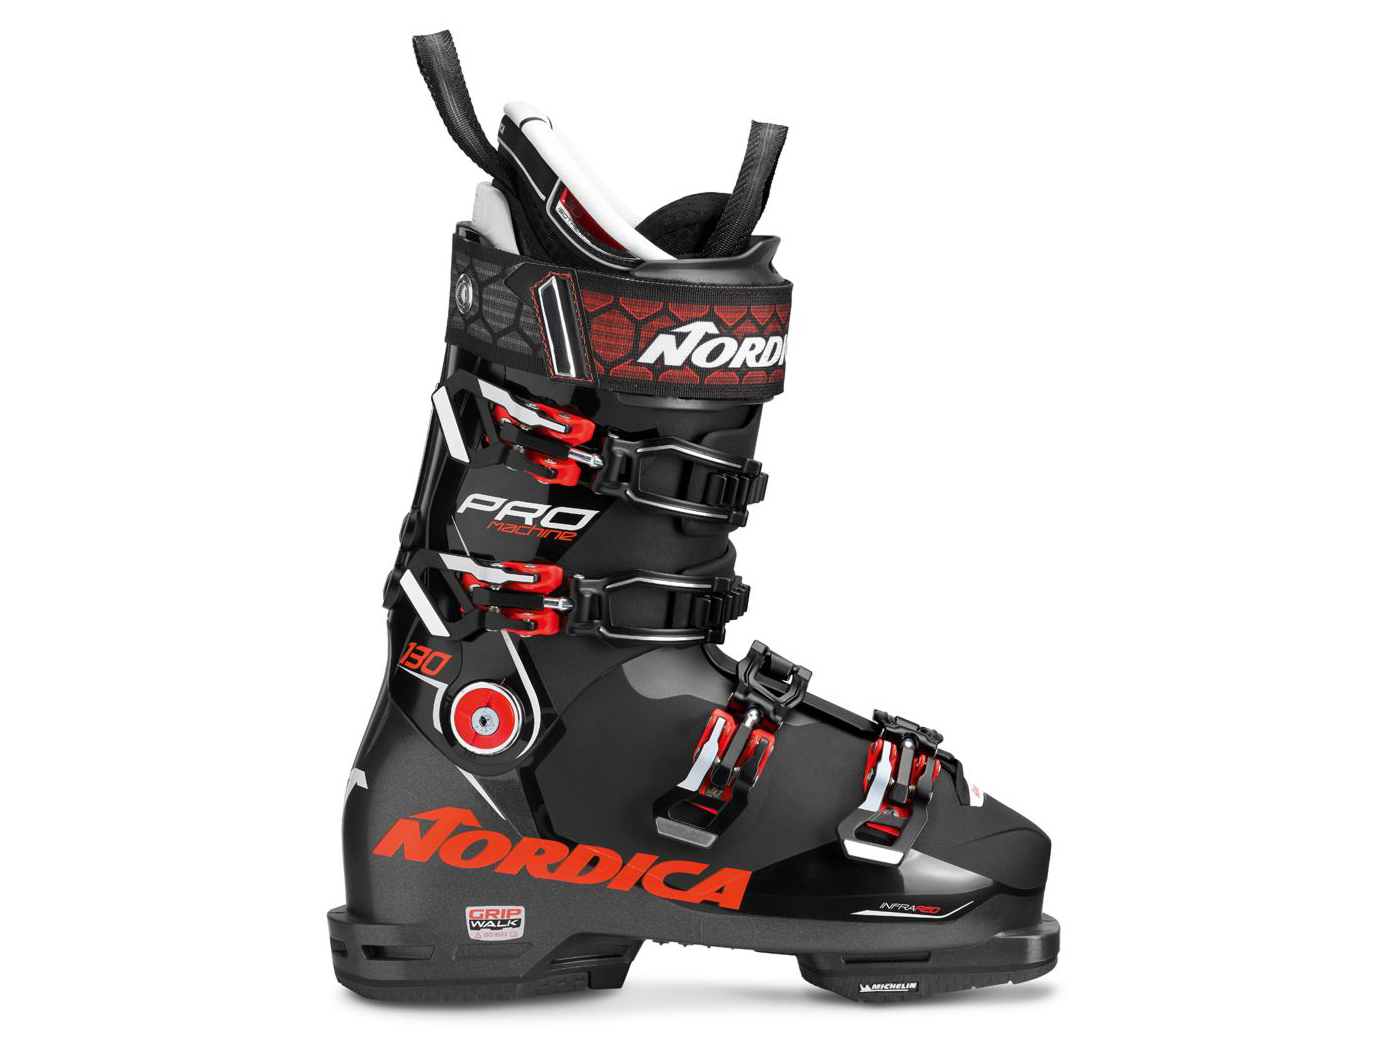 Jonathan Ellsworth reviews the Nordica Promachine 130 for Blister